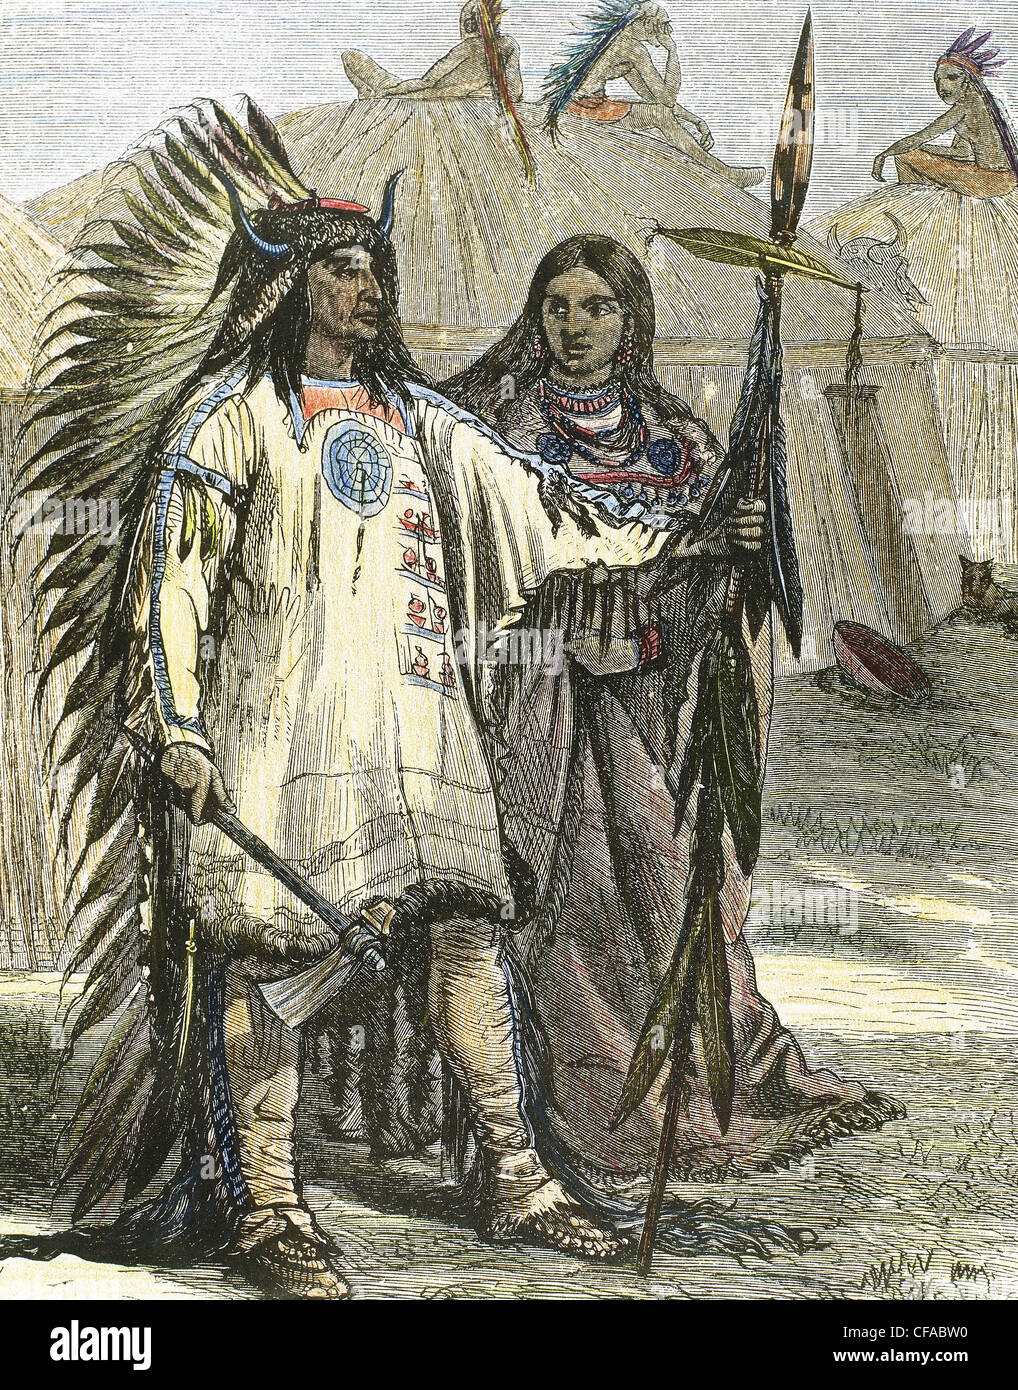 American Indians. Colored engraving, 1880. - Stock Image